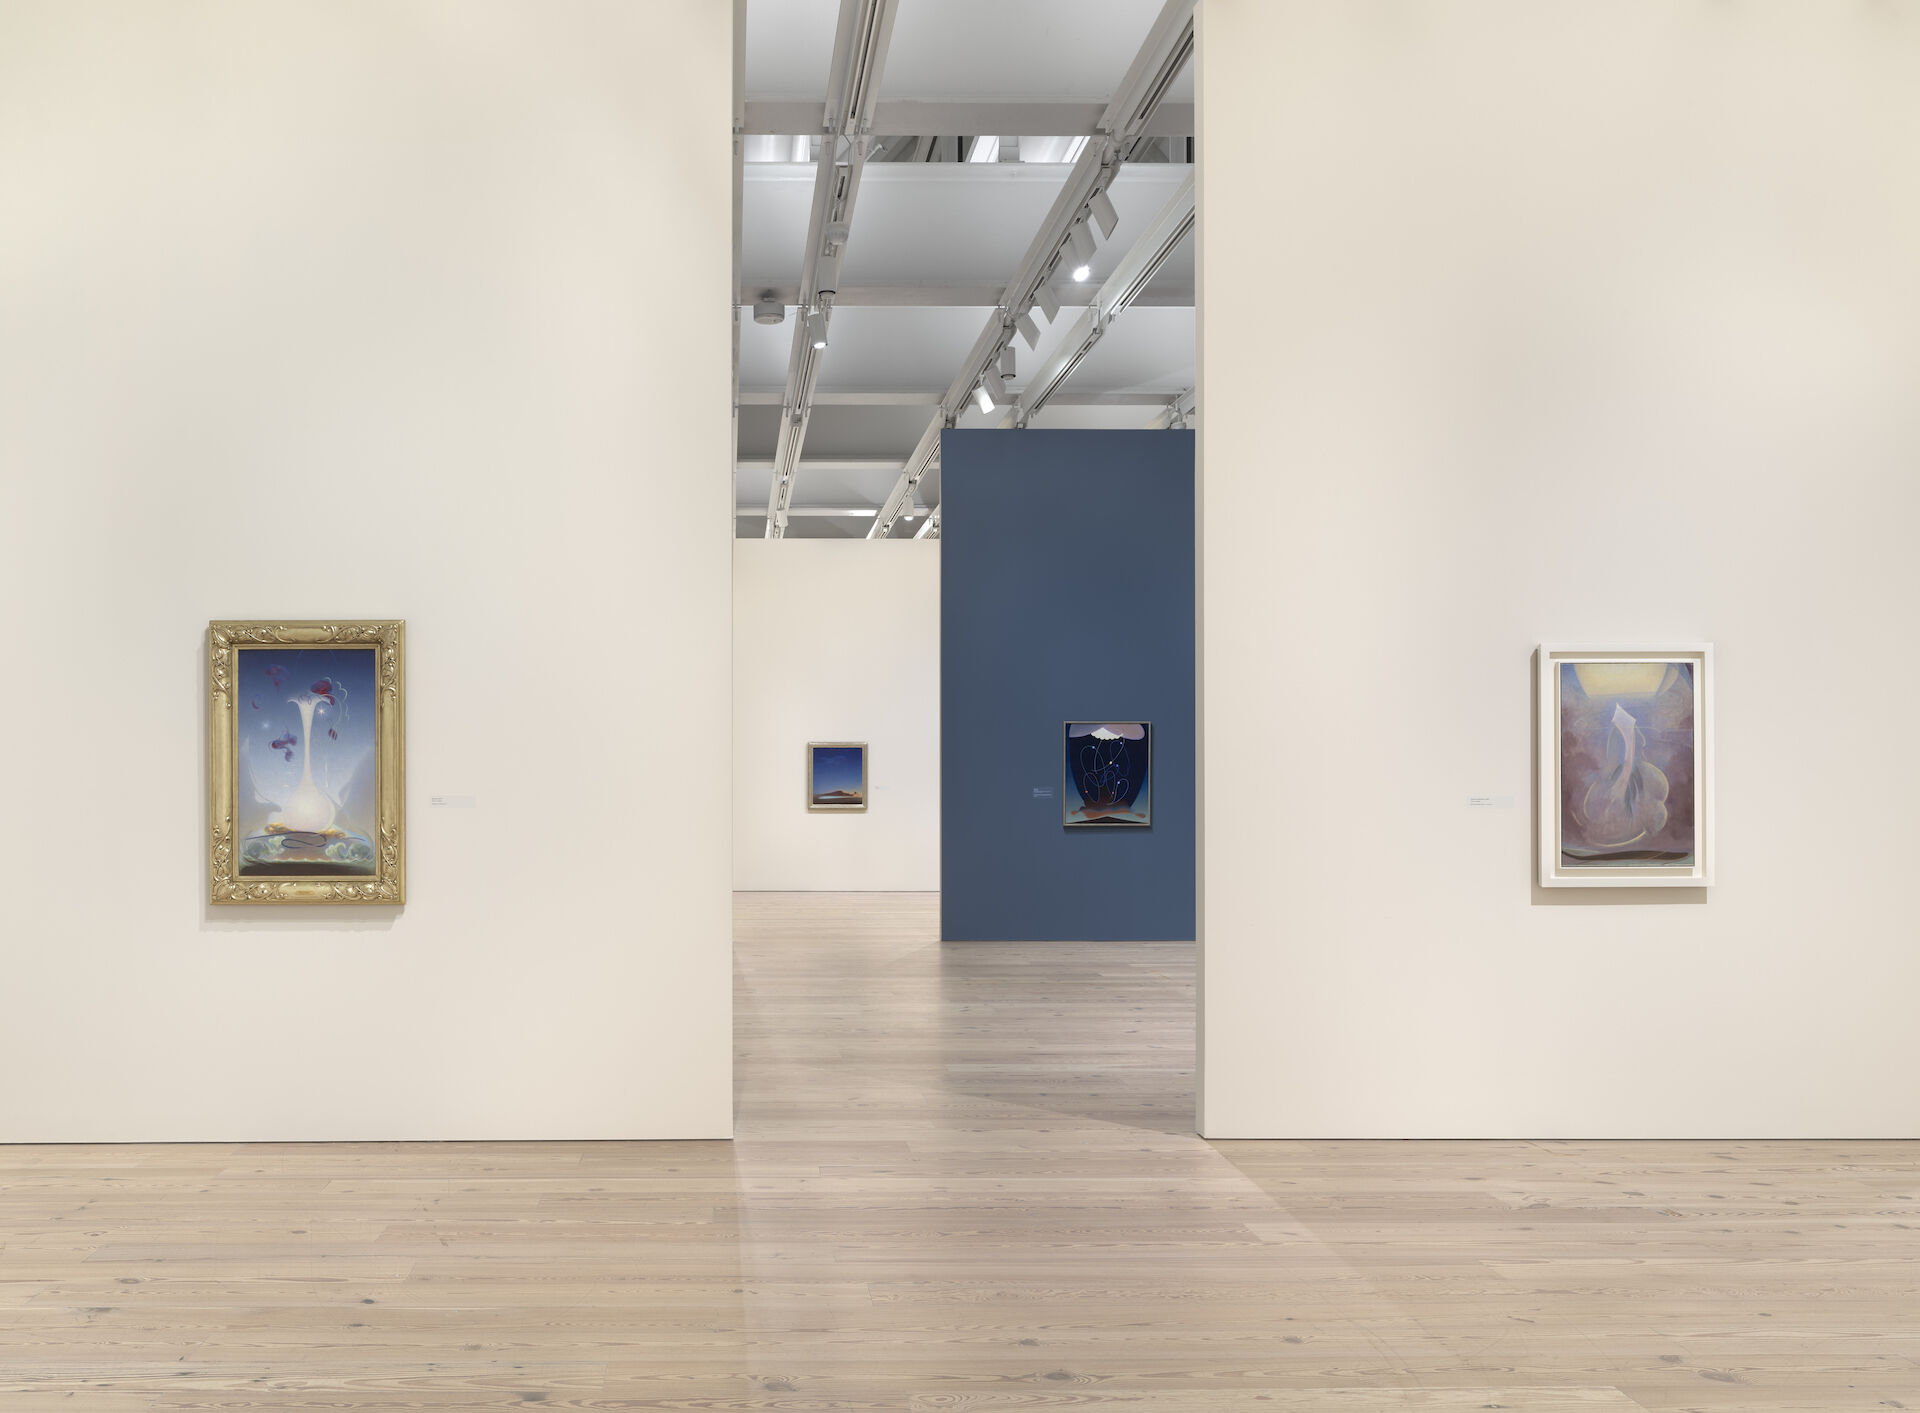 Two white walls appear at the forefront of the gallery, framed by two Agnes Pelton paintings, Memory, 1937 to the left and Ascent (Liberation), 1946 to the right.